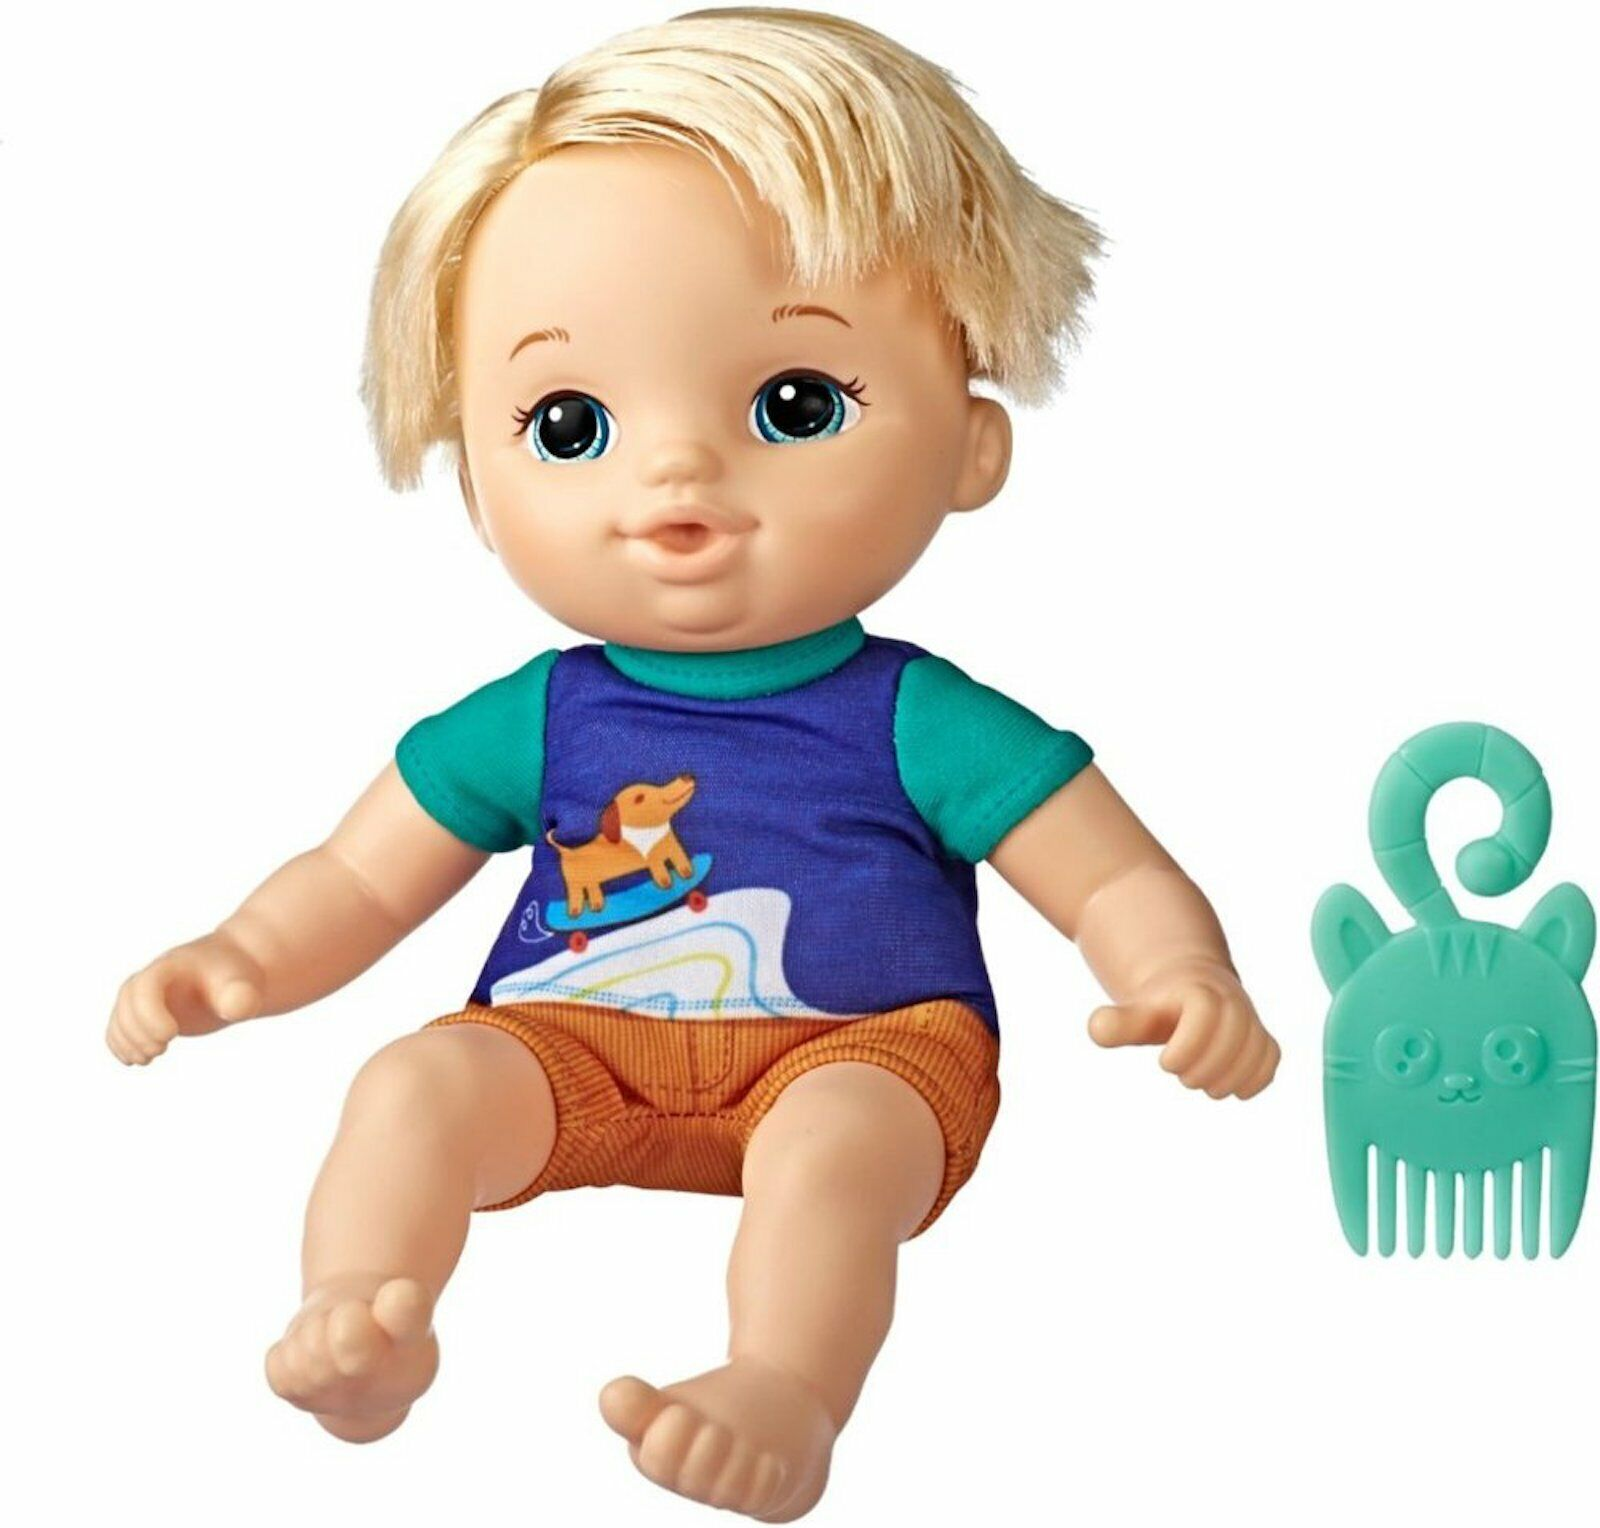 """Hasbro Littles by Baby Alive /""""Zack/"""" 9-Inch Toddler Doll E8407 SQUEEZABLE BELLY!!"""